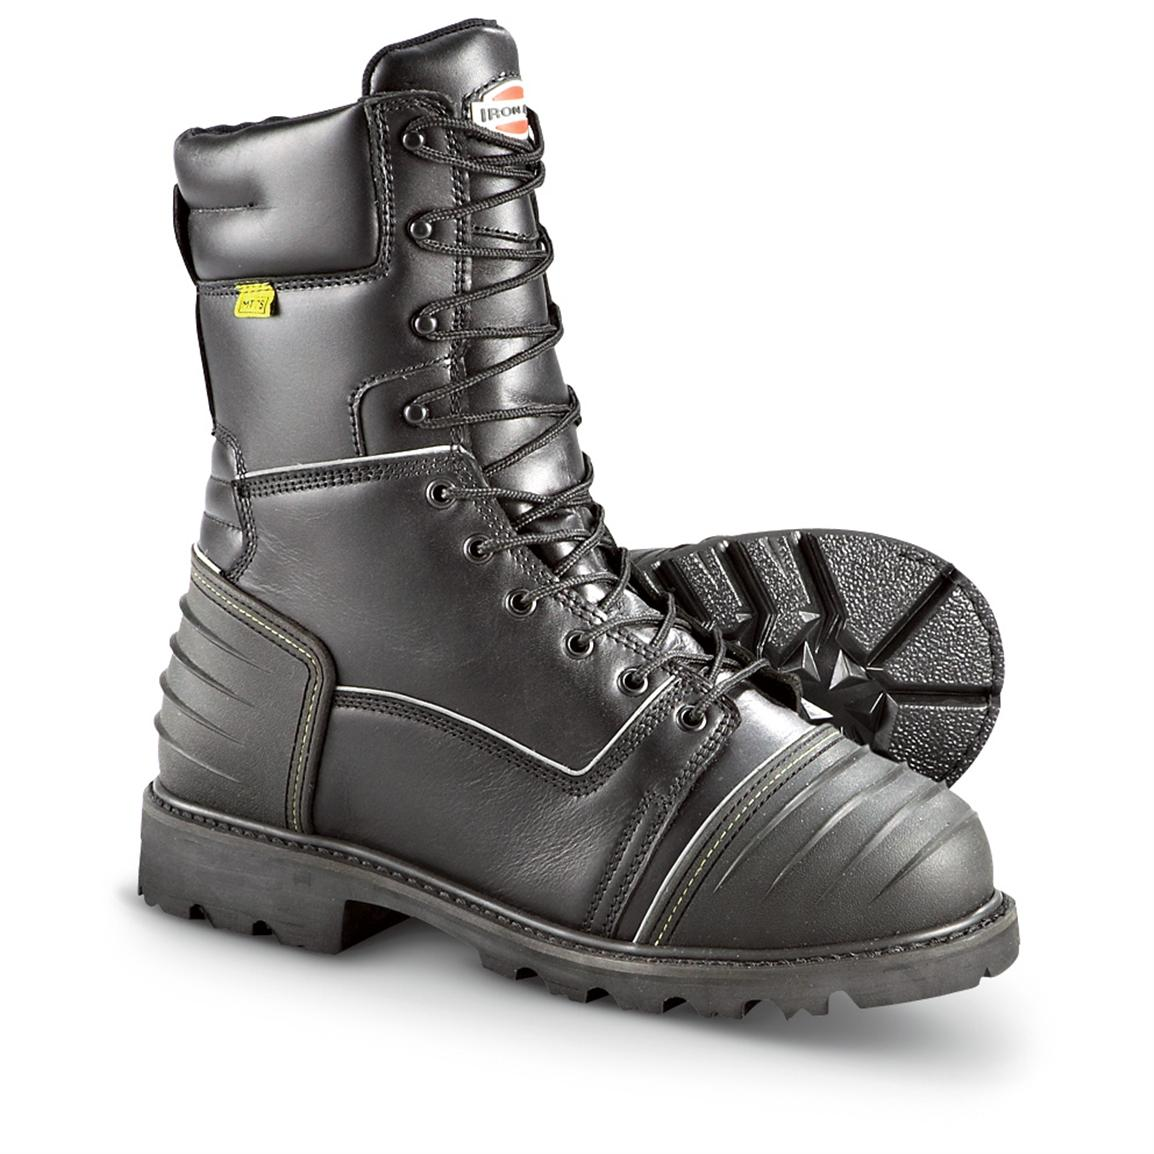 "Men's Iron Age® 11"" Waterproof Steel Toe 400 gram Insulated Miner's Work Boots, Black"